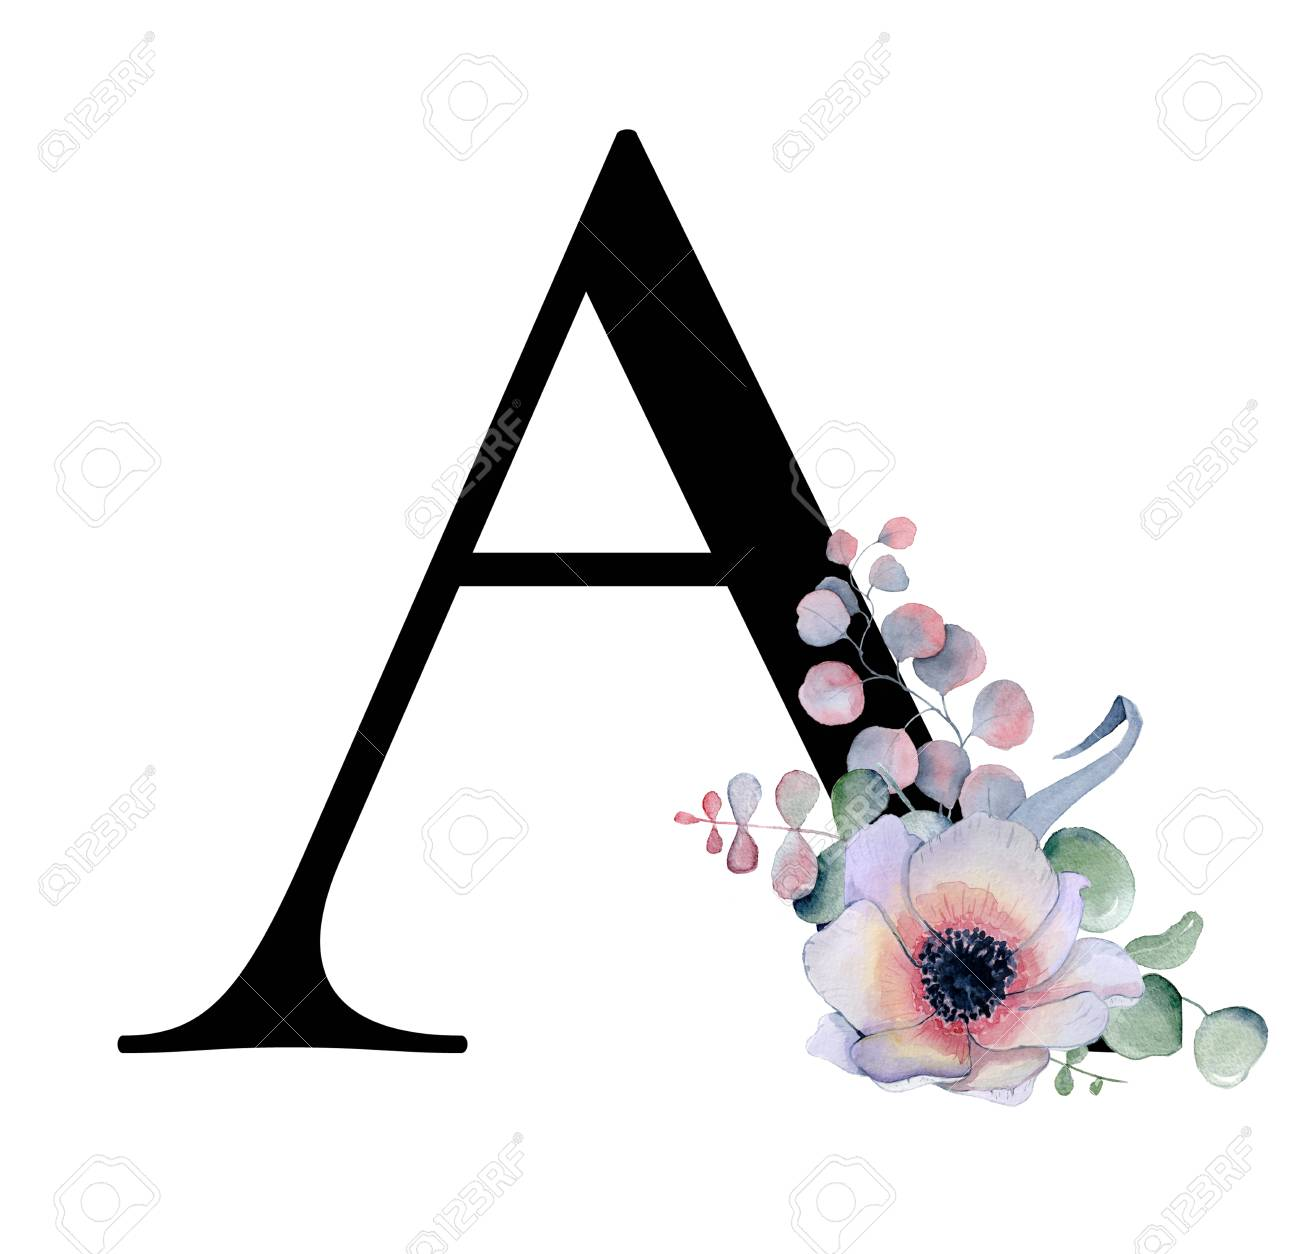 Floral watercolor alphabet. Monogram initial letter A design with hand drawn peony and anemone flower and black panther for wedding invitation, cards, logos - 101737283